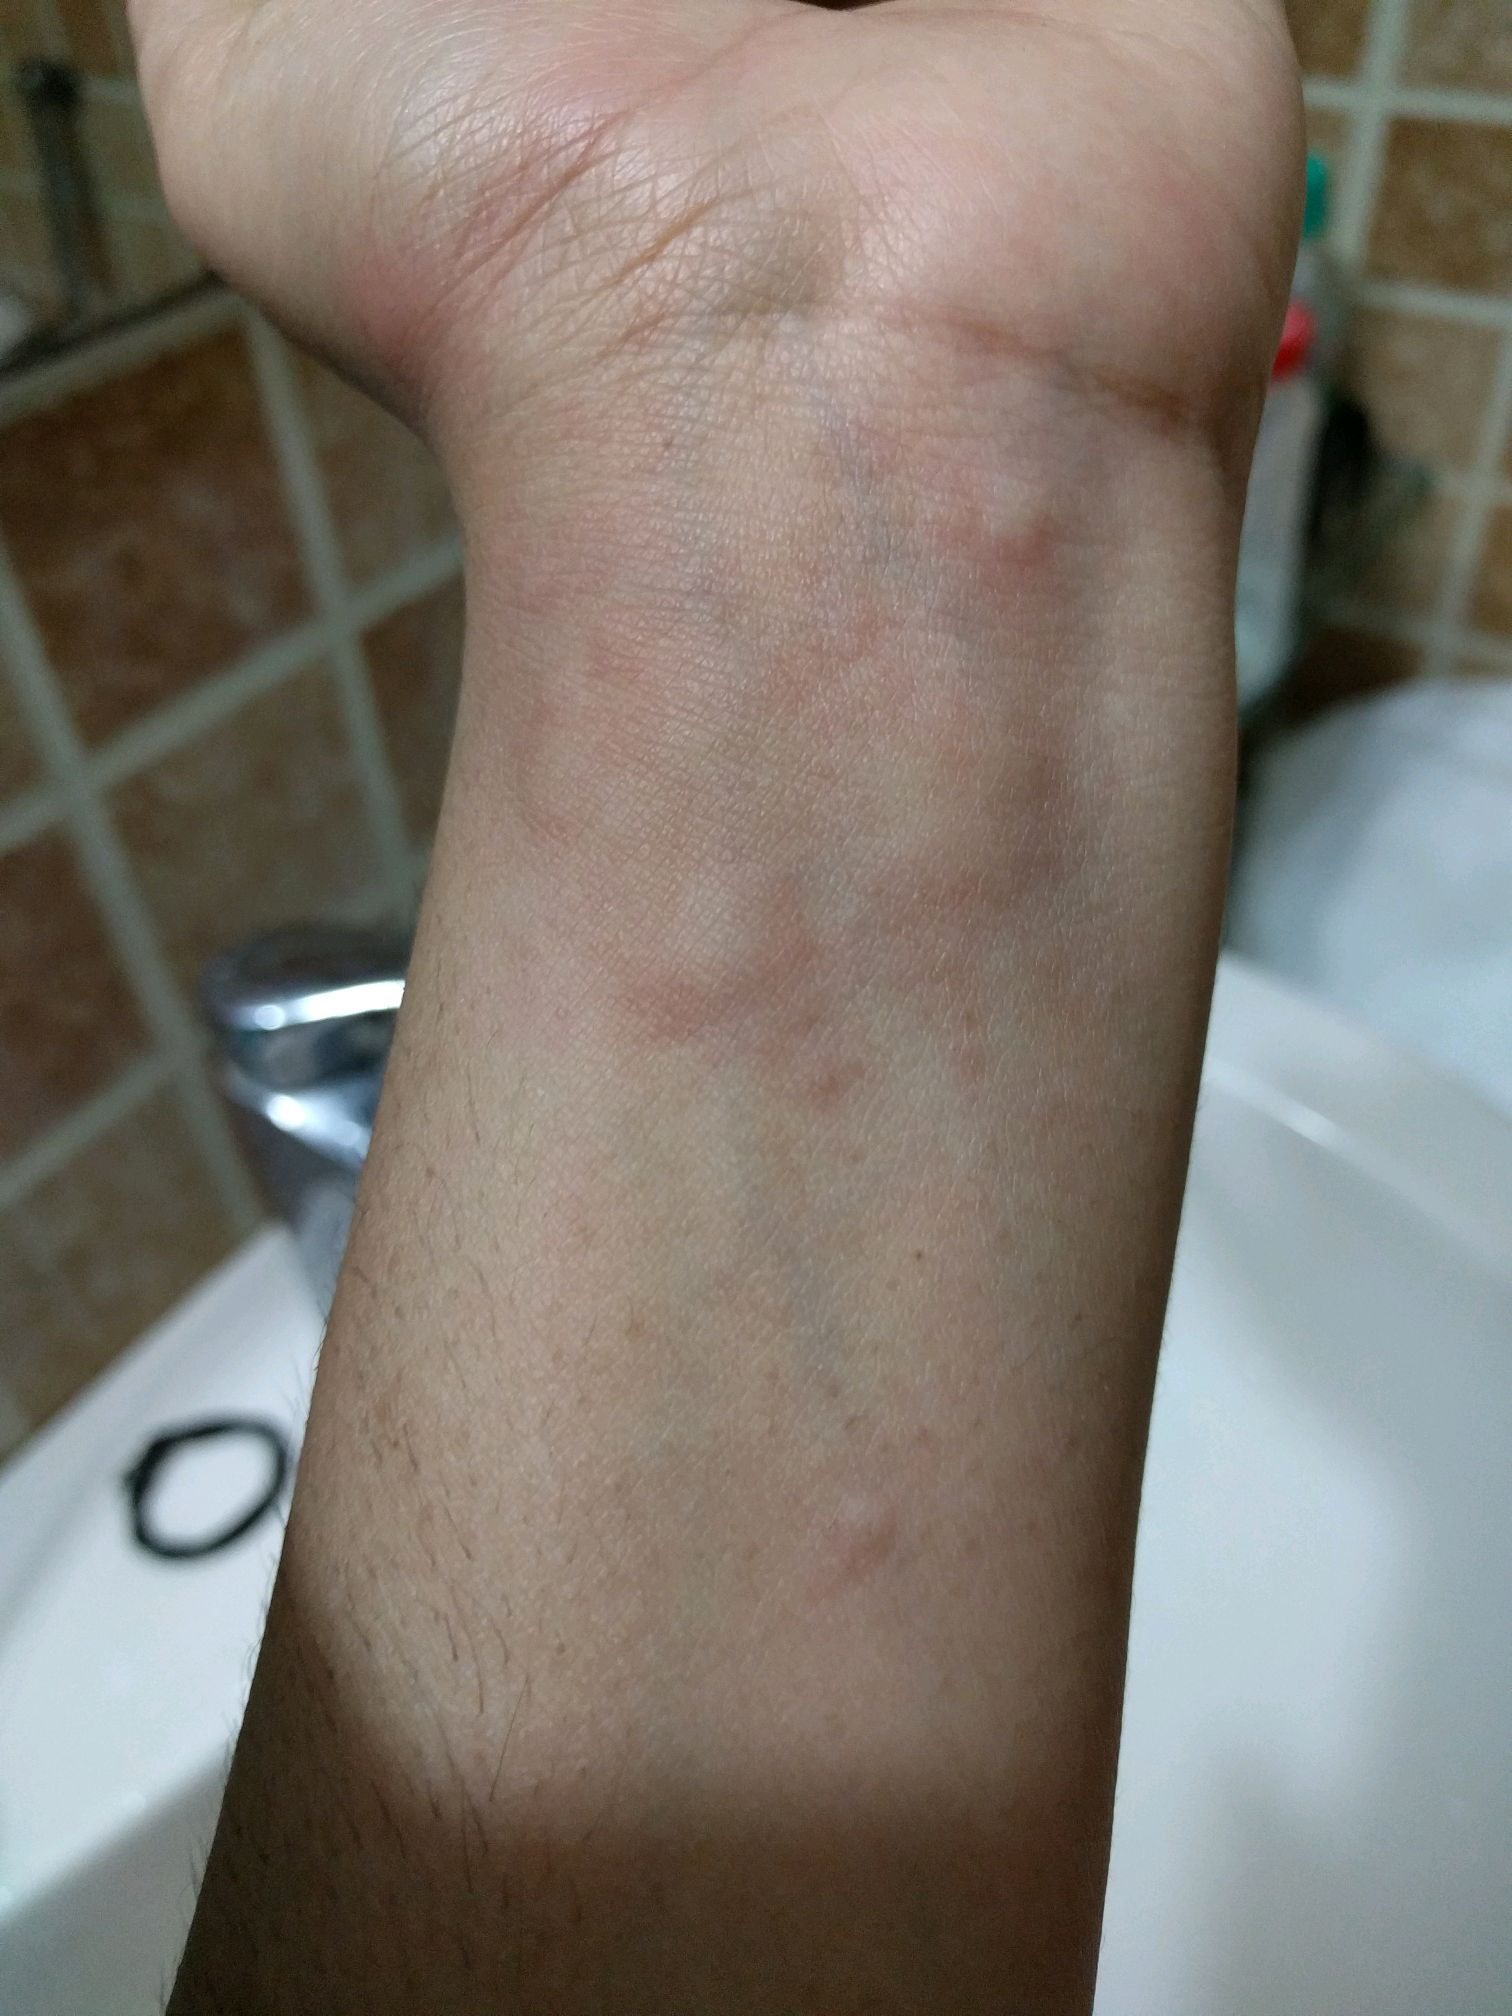 Bumps On Skin It Gets All Over Body Please Suggest Medicine-4288